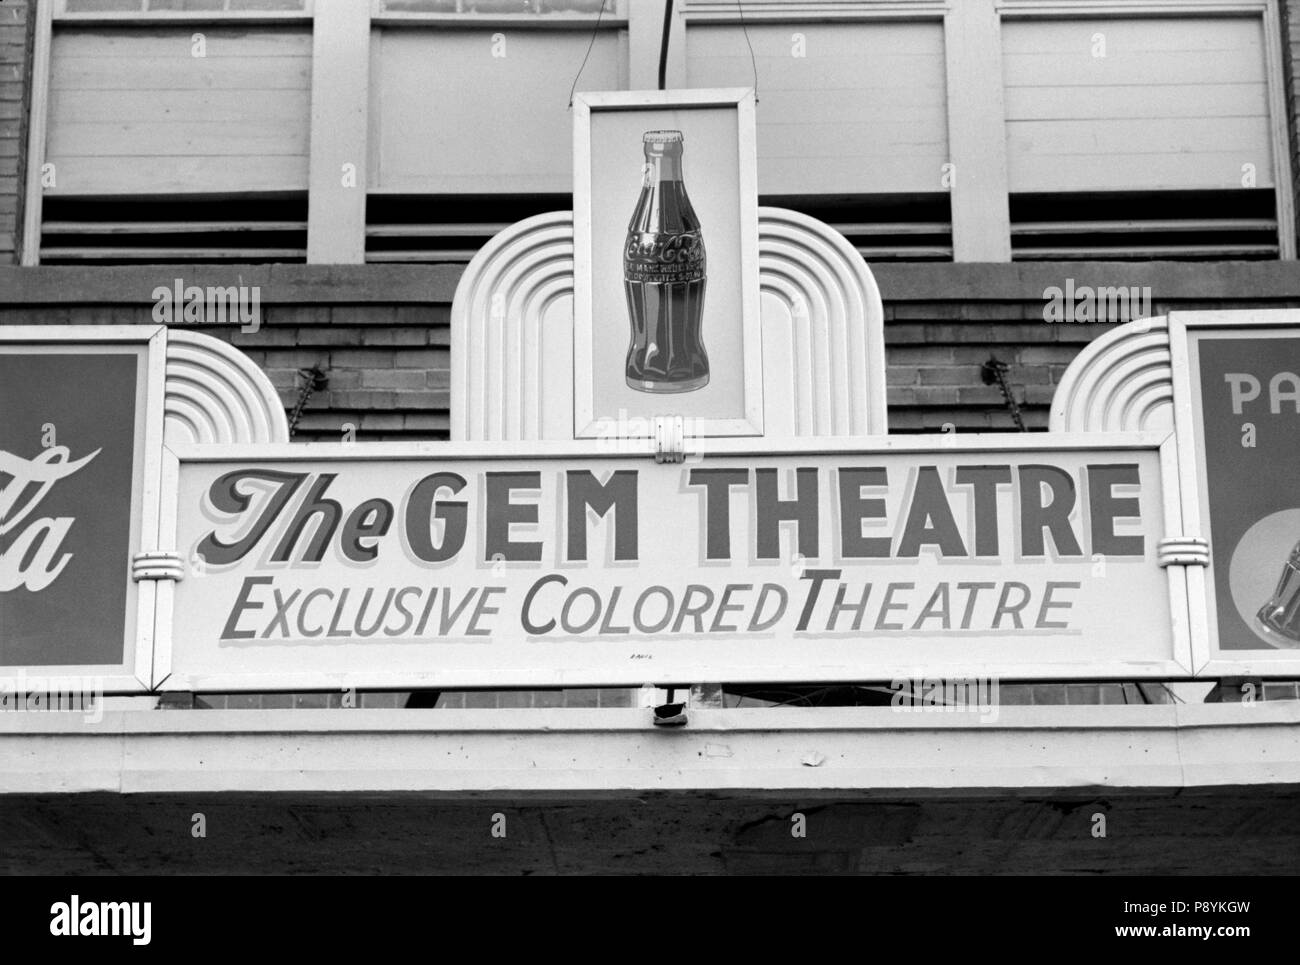 Sign Above Moving Picture Theater, 'Exclusive Colored Theatre', Waco, Texas, USA, Russell Lee, Farm Security Administration, November 1939 - Stock Image